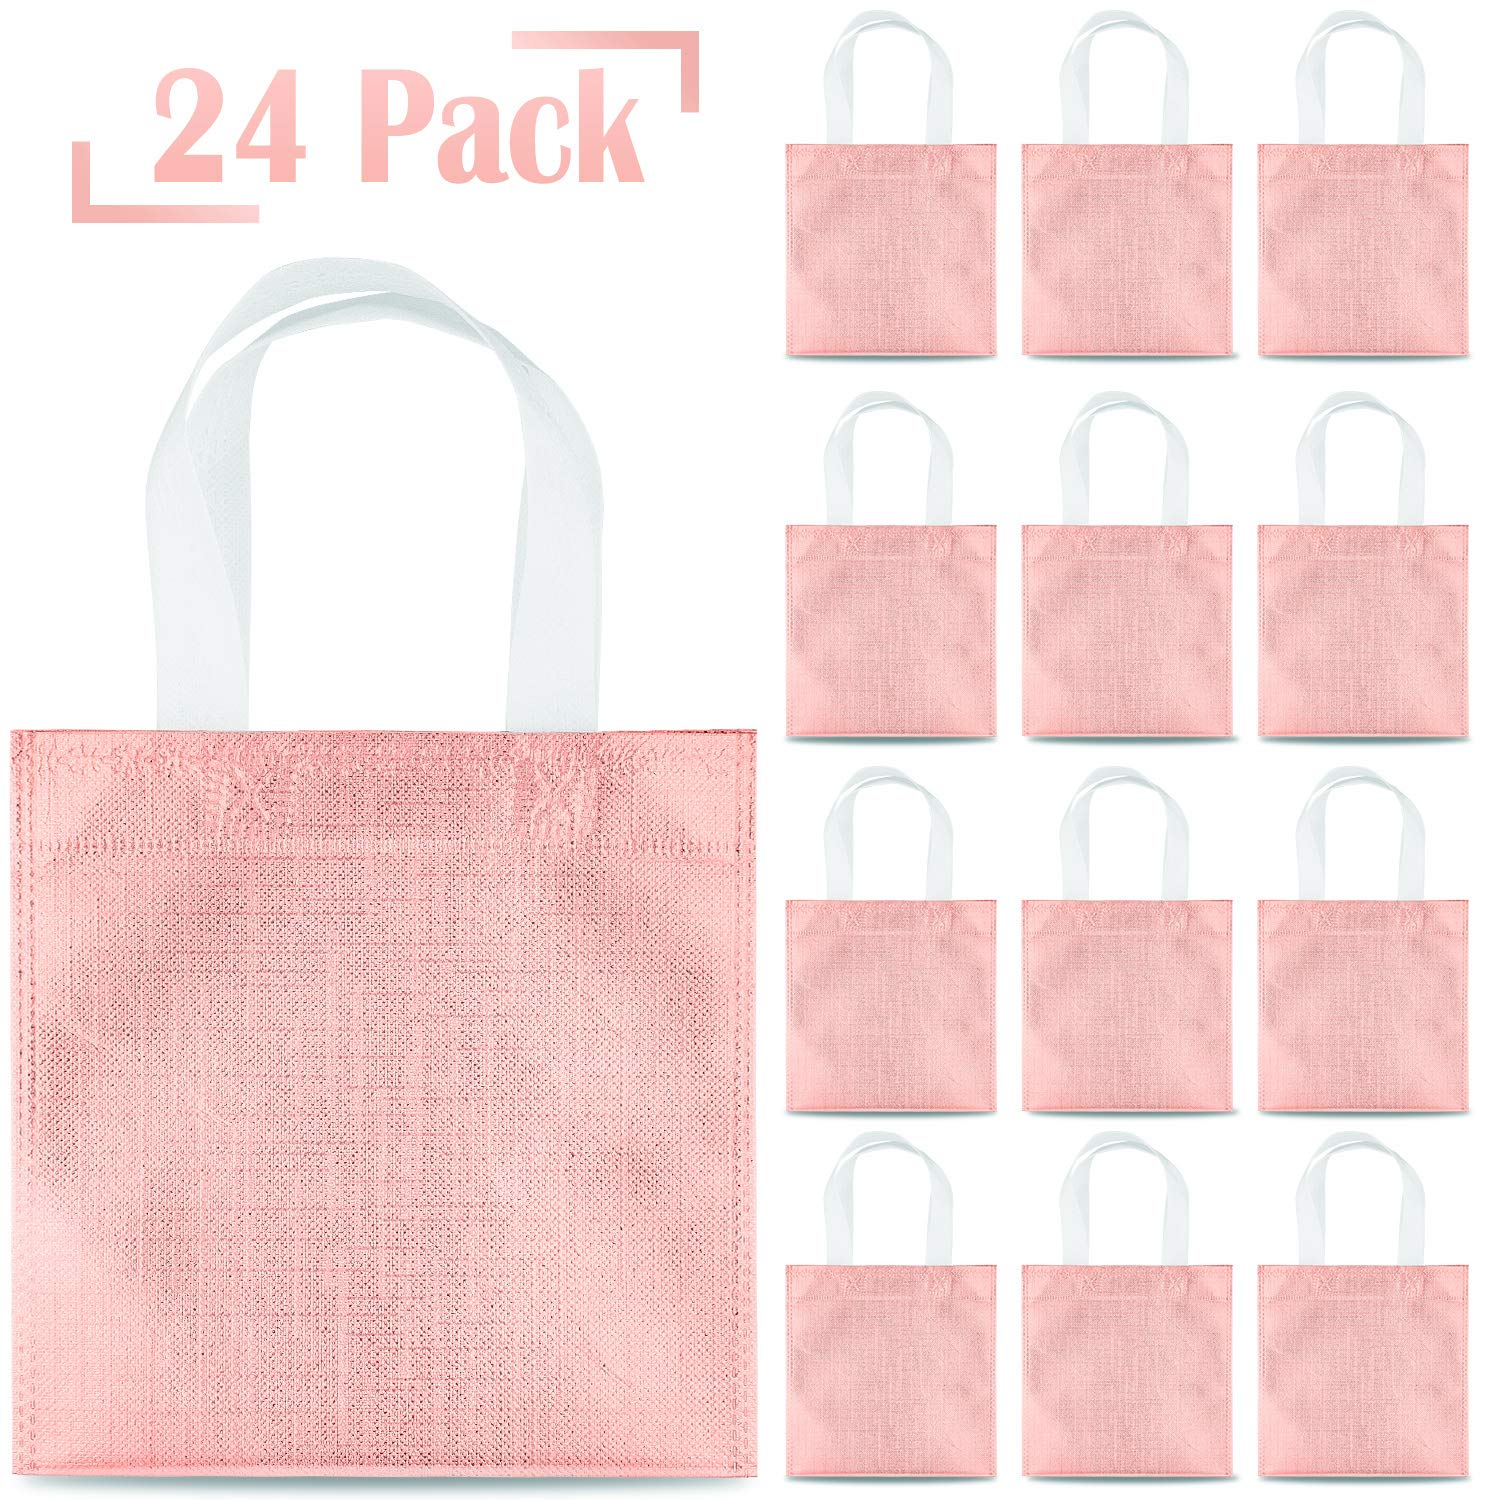 Whaline 24 Pieces 8''x8'' Non-Woven Small Party Bags, Gift Bags, Reusable Candy Goodie Bags, Glossy Tote Bags, DIY Craft Bags for Hoilday, Event, Birthday (Rose Gold)